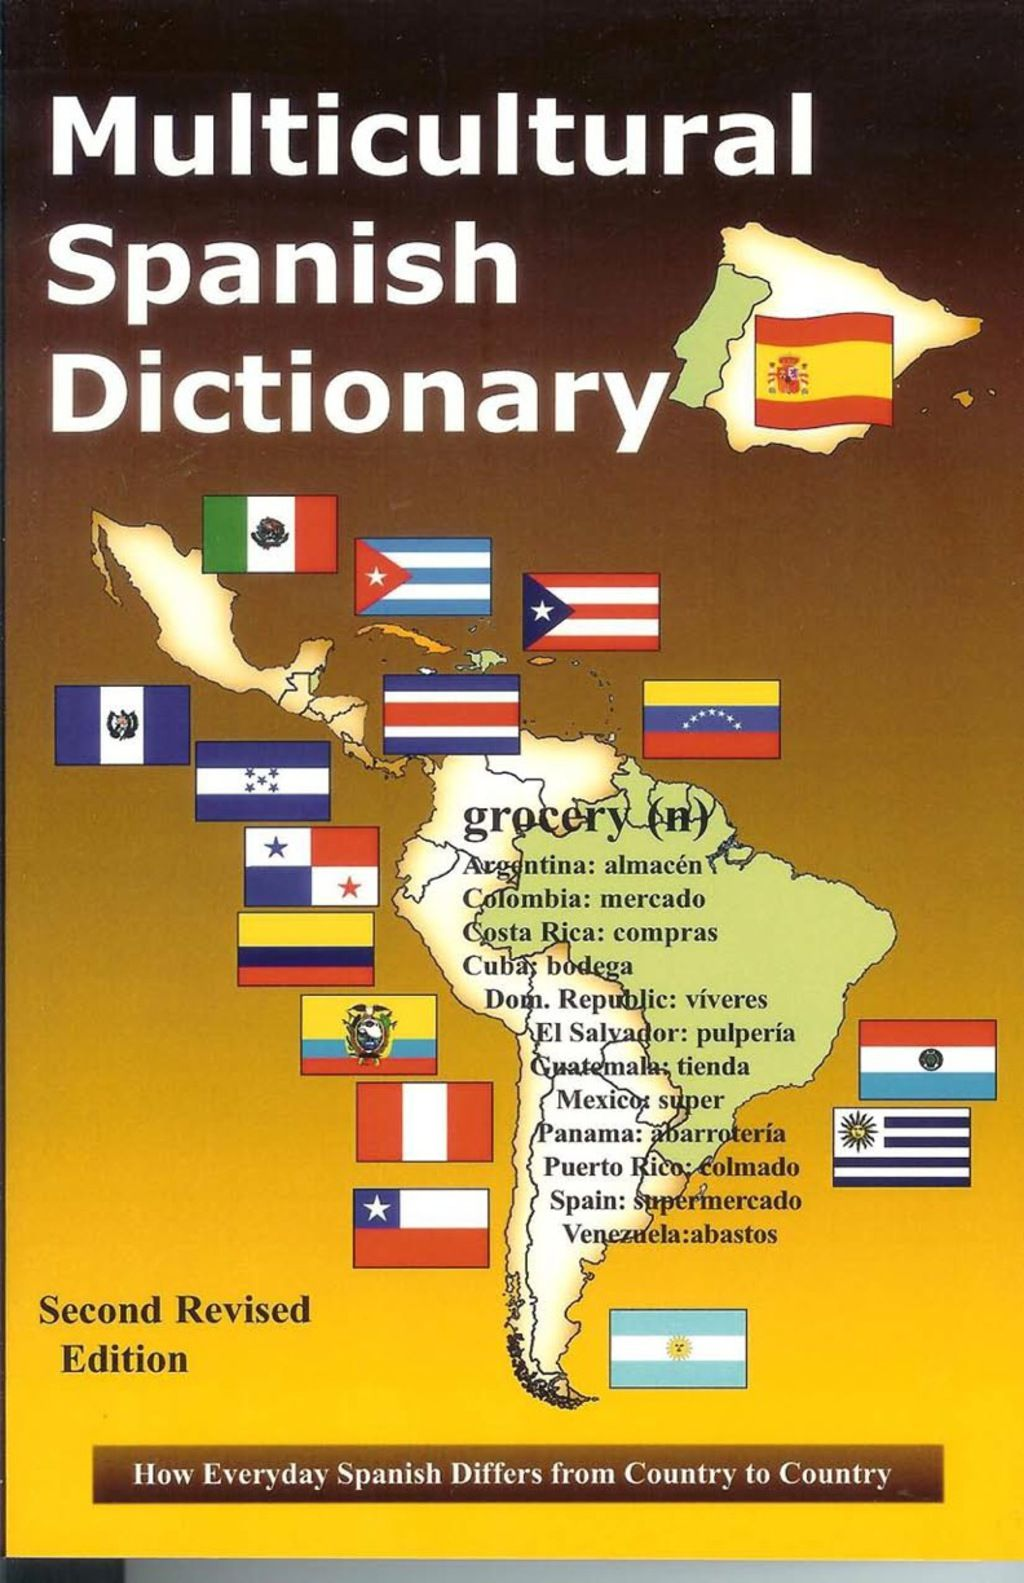 Multicultural Spanish Dictionary Ebook